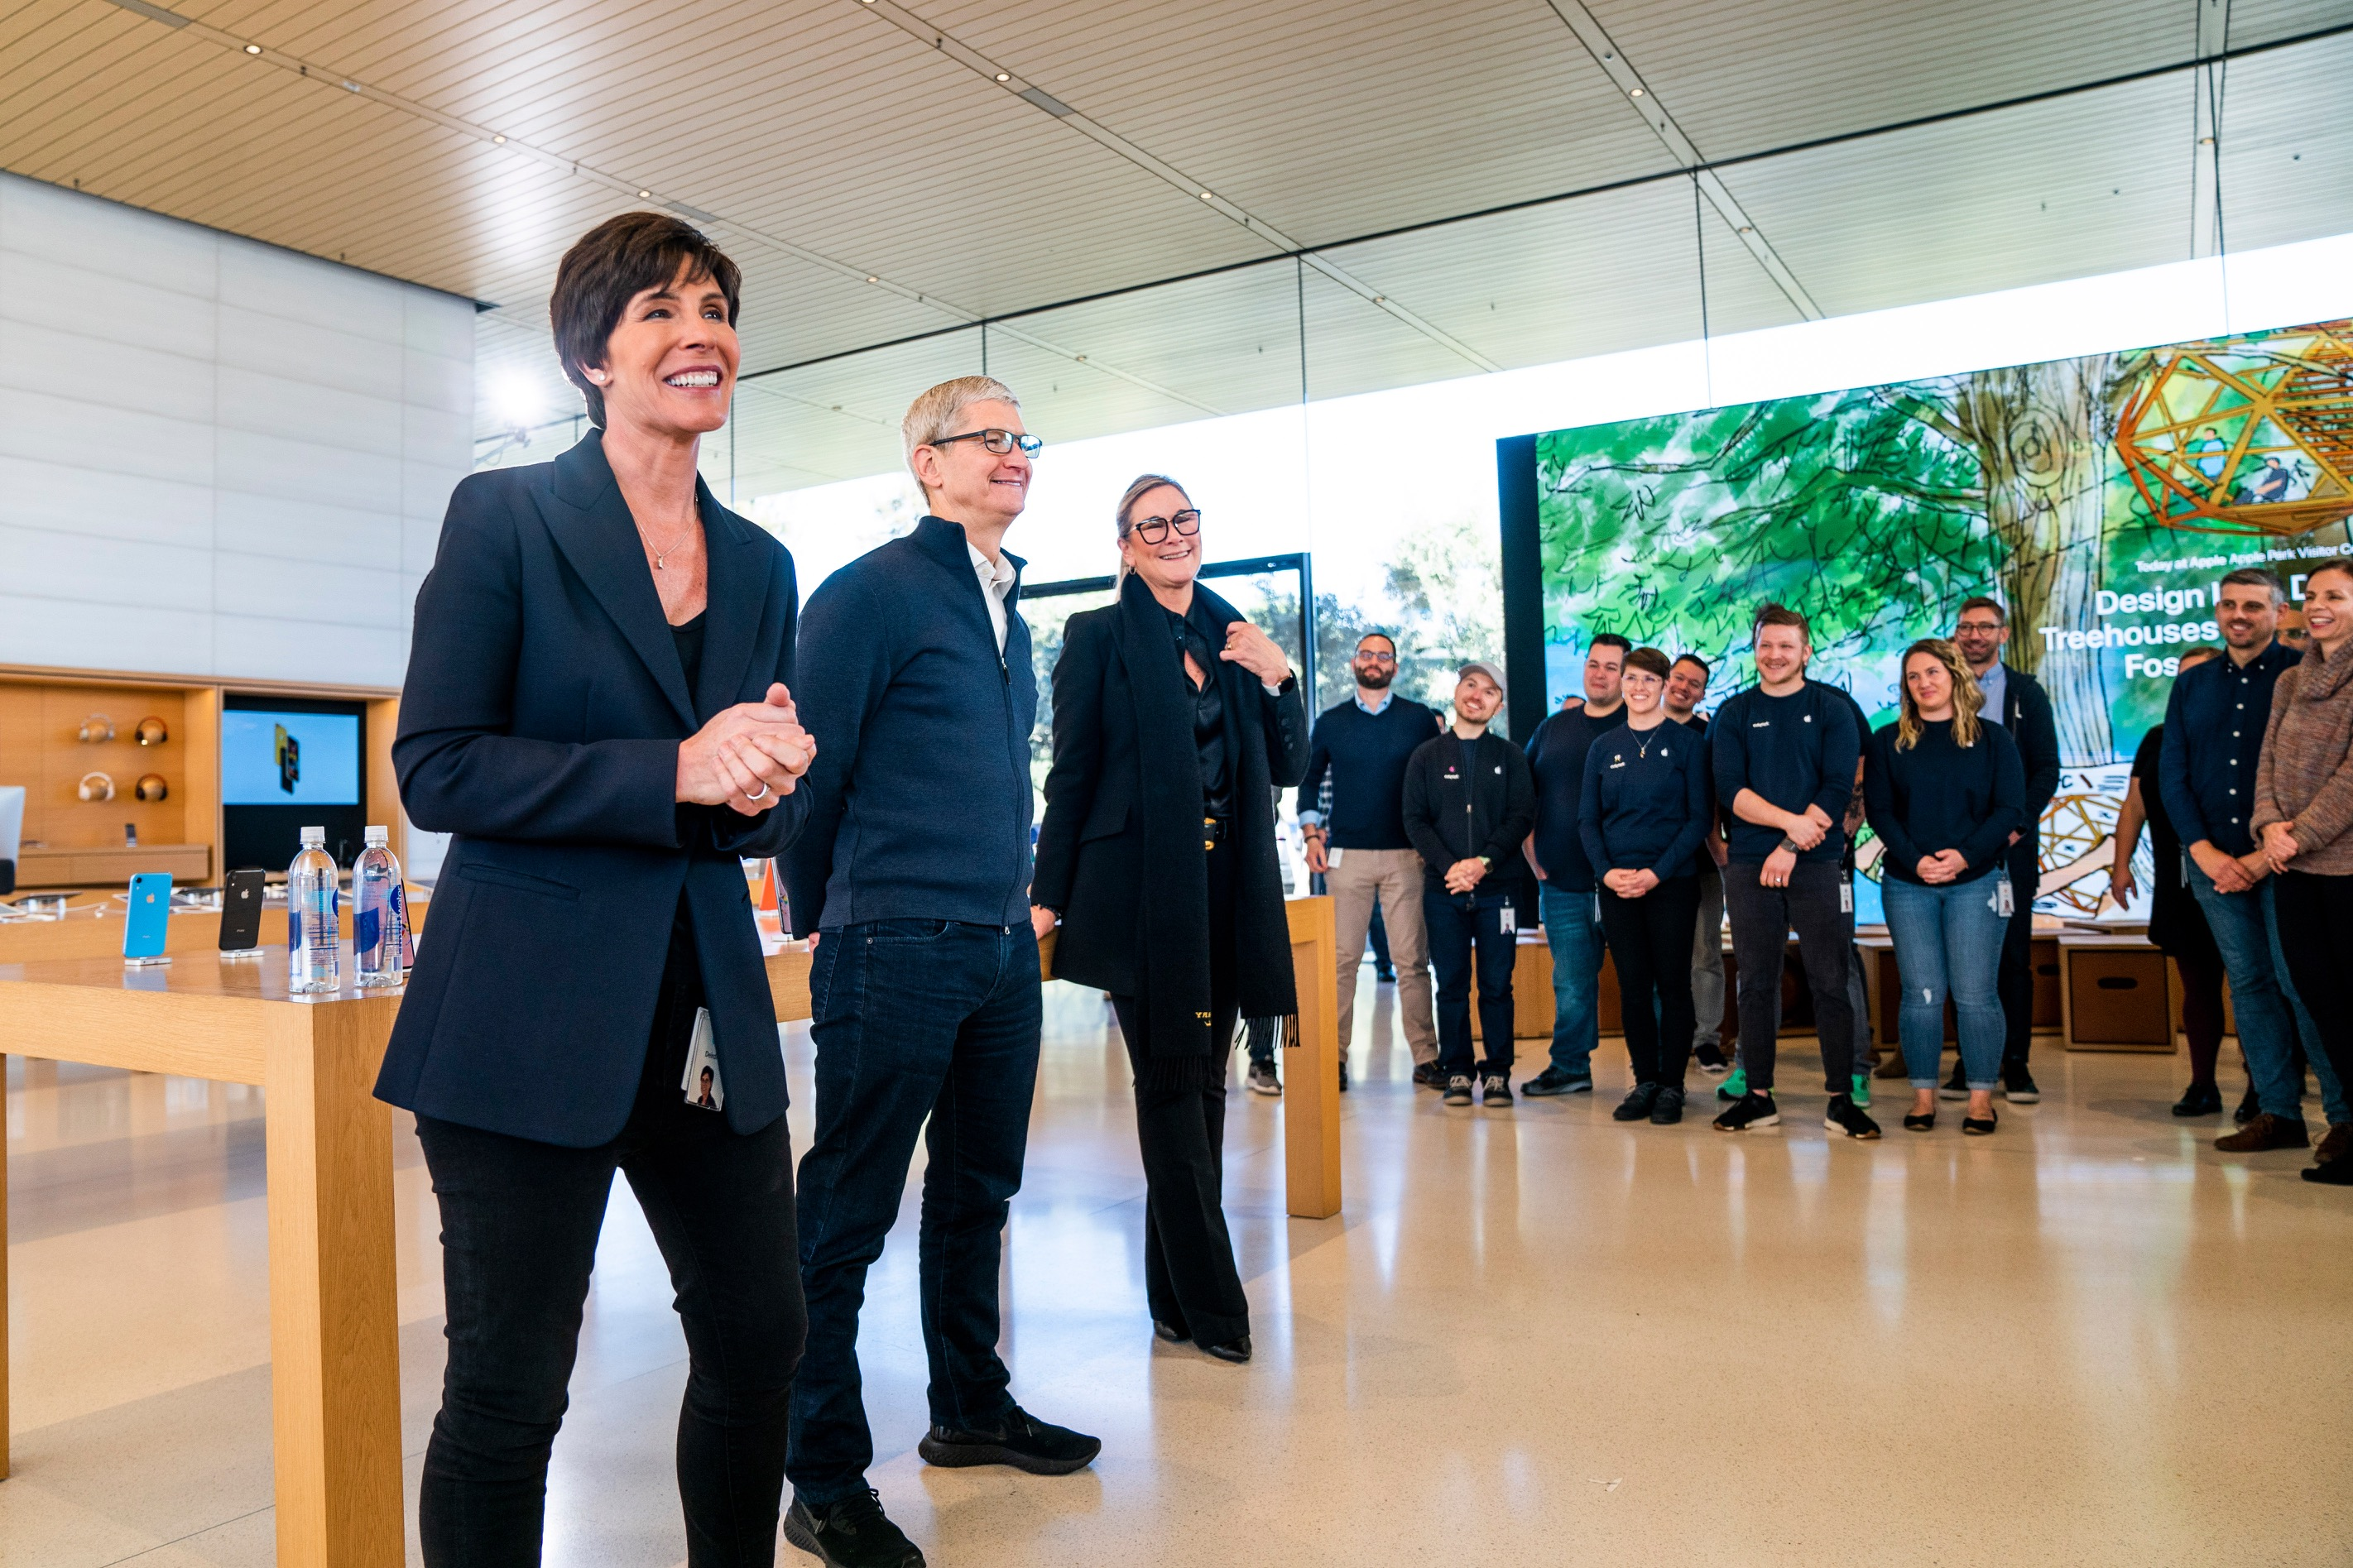 Deirdre O'Brien, Tim Cook e Angela Ahrendts